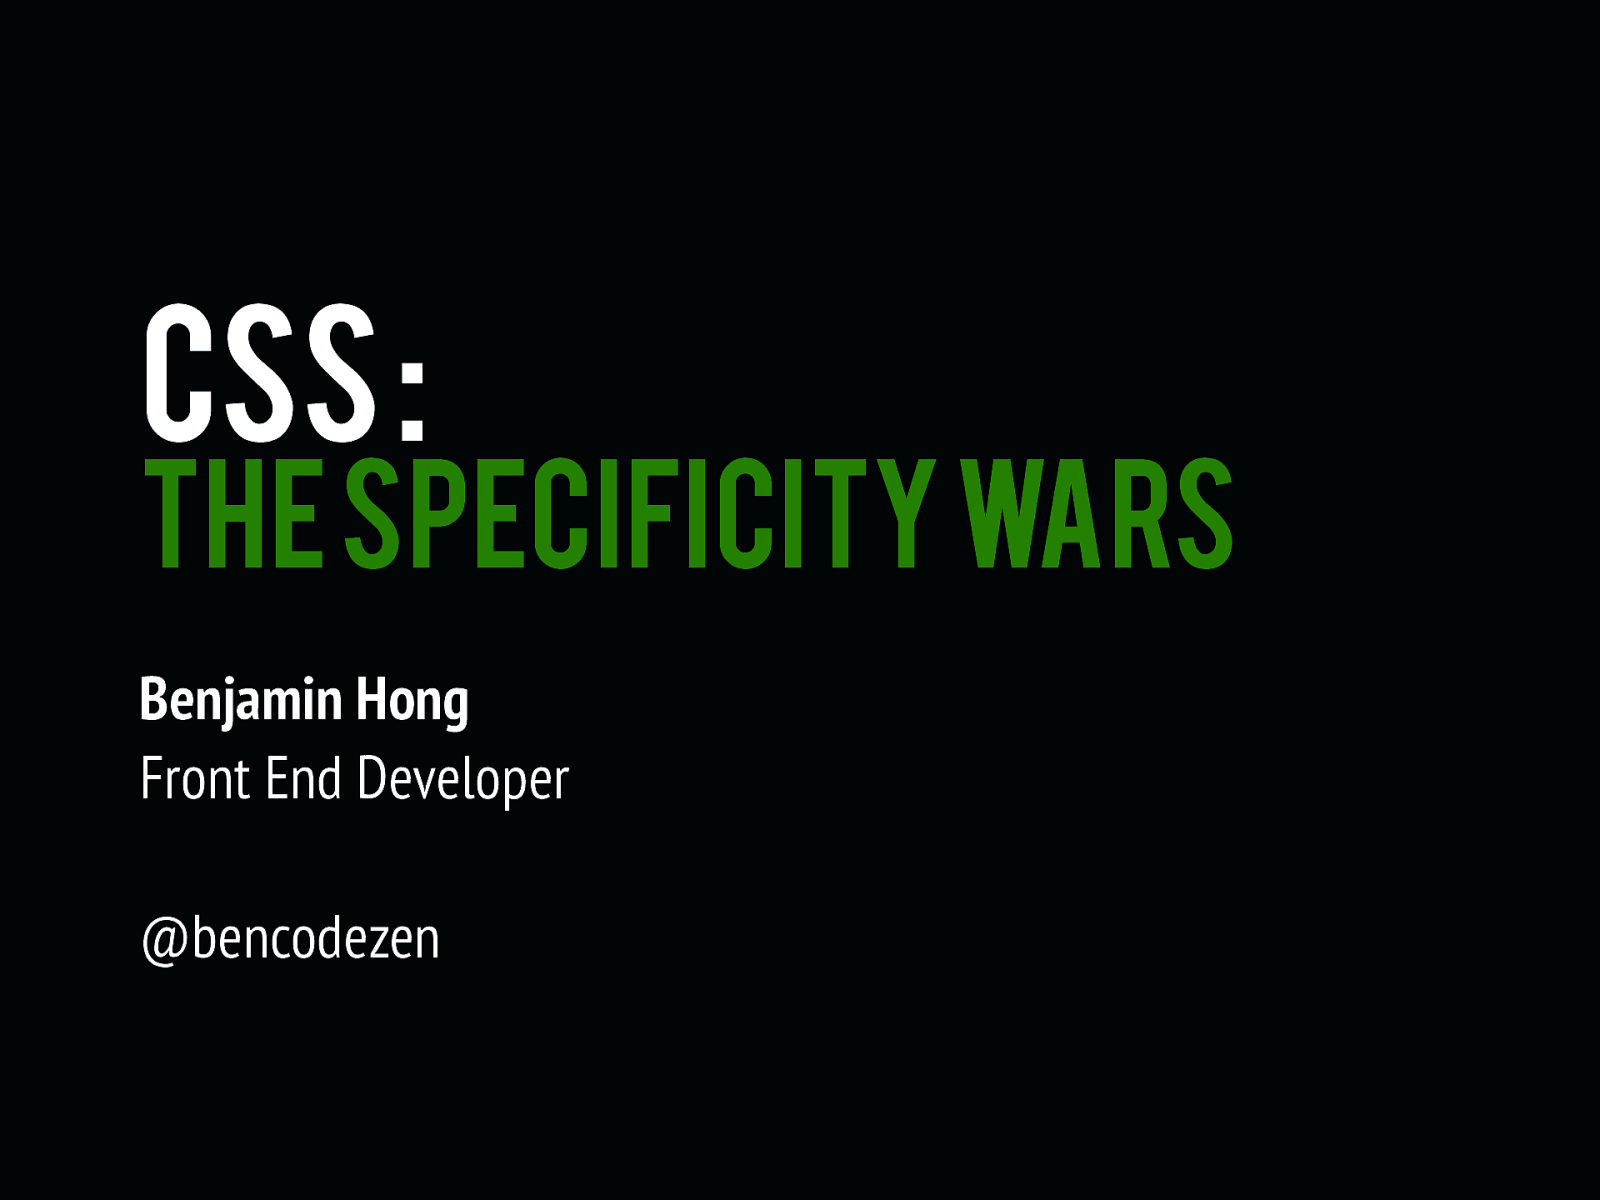 CSS: The Specificity Wars